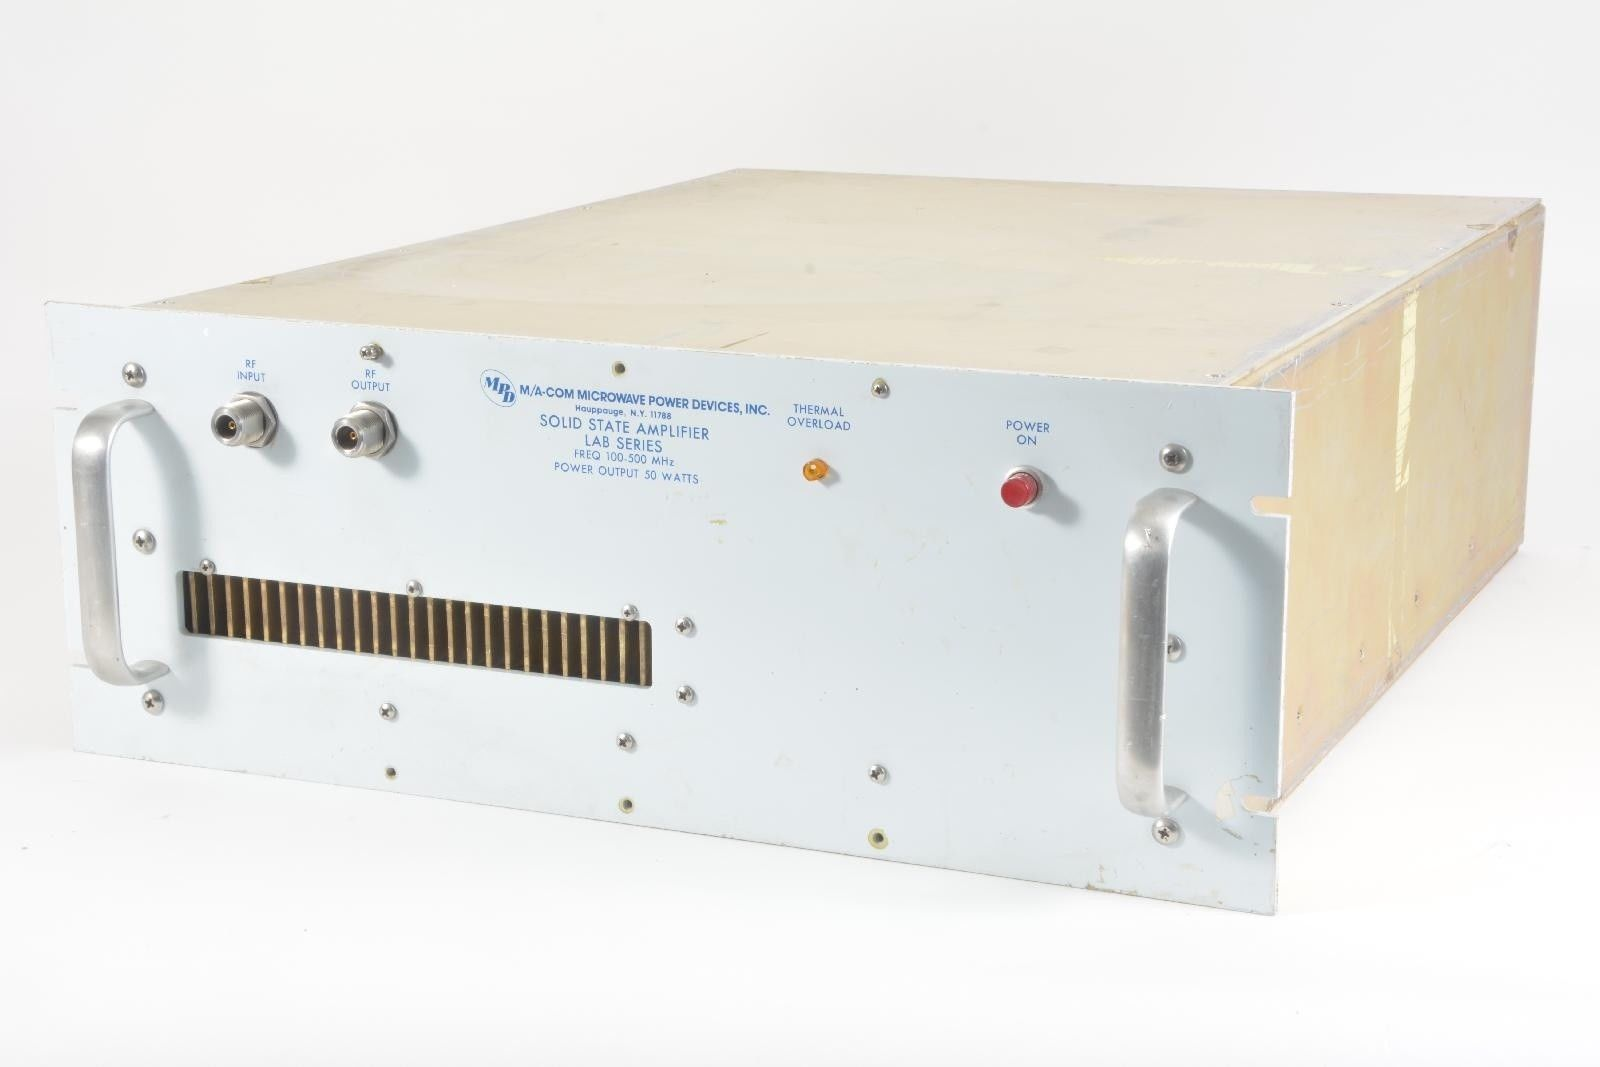 microwave-power-device-lab-1-105-50h-solid-state-amplifier-lab-series-100-500-mhz-50-watts-0.jpg